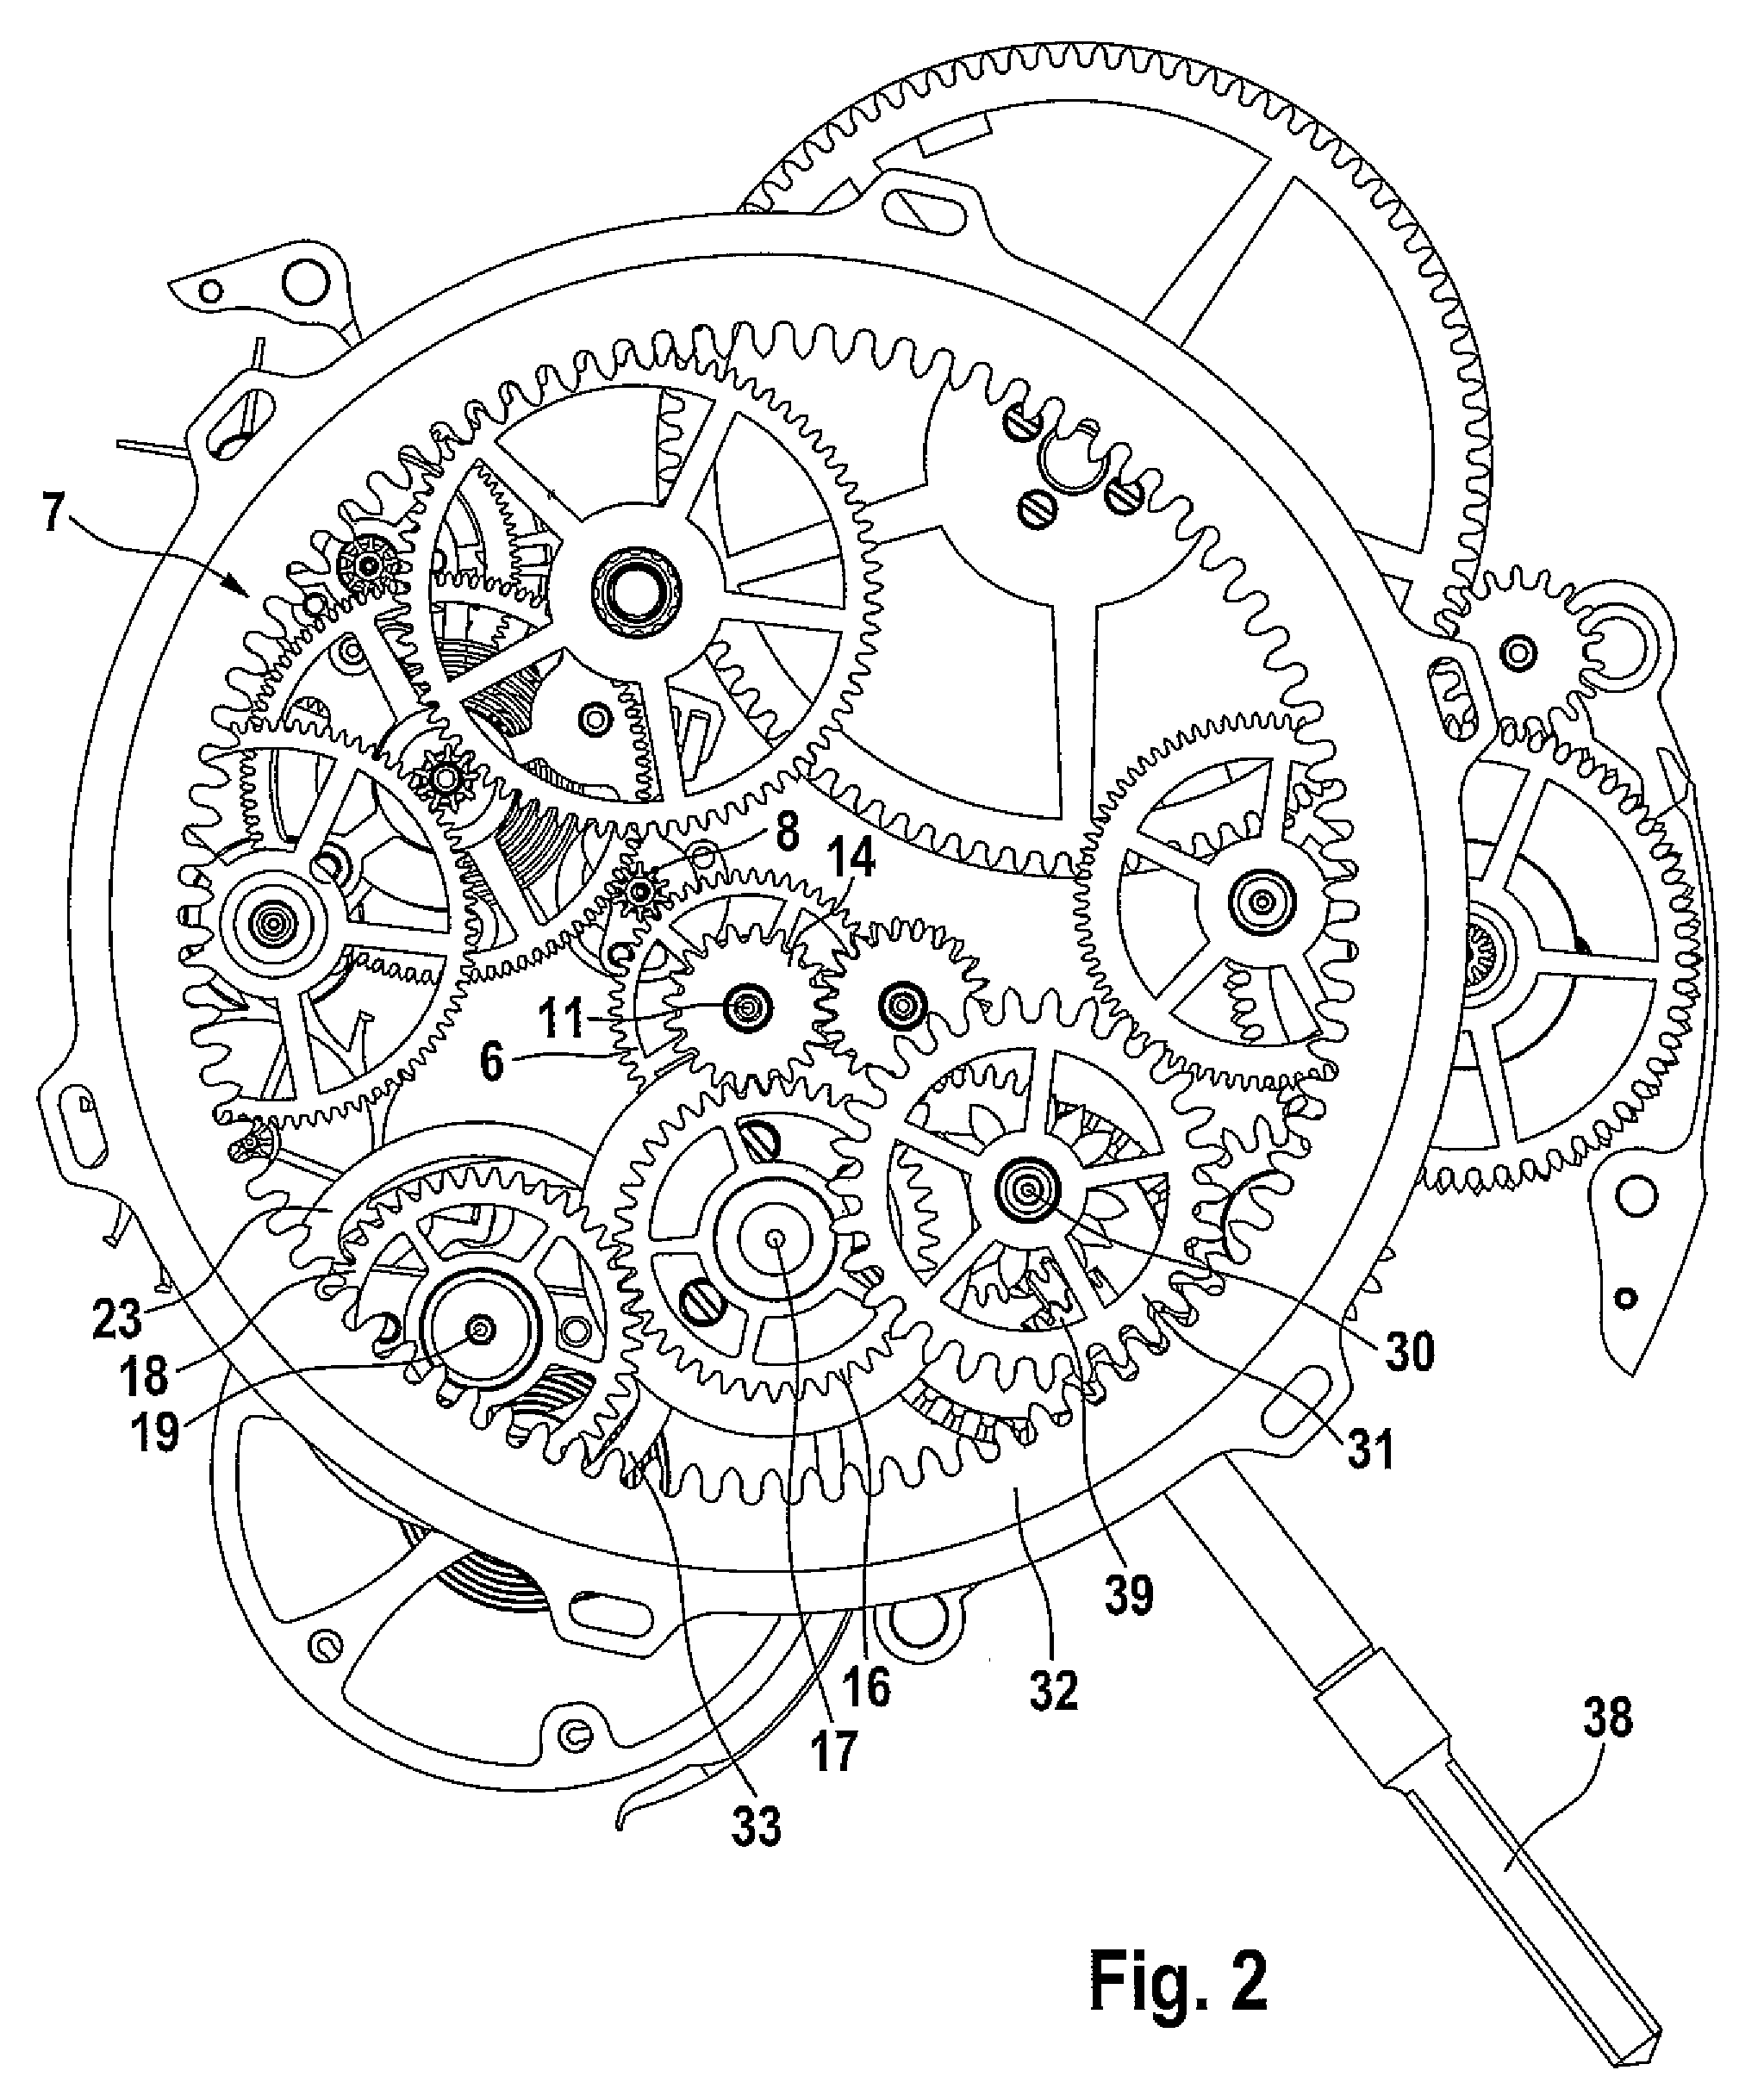 Pocket Watch Movement Diagram Eye Eyeshadow Placement Us08406087 20130326 D00002 Png 20472424 Dövme